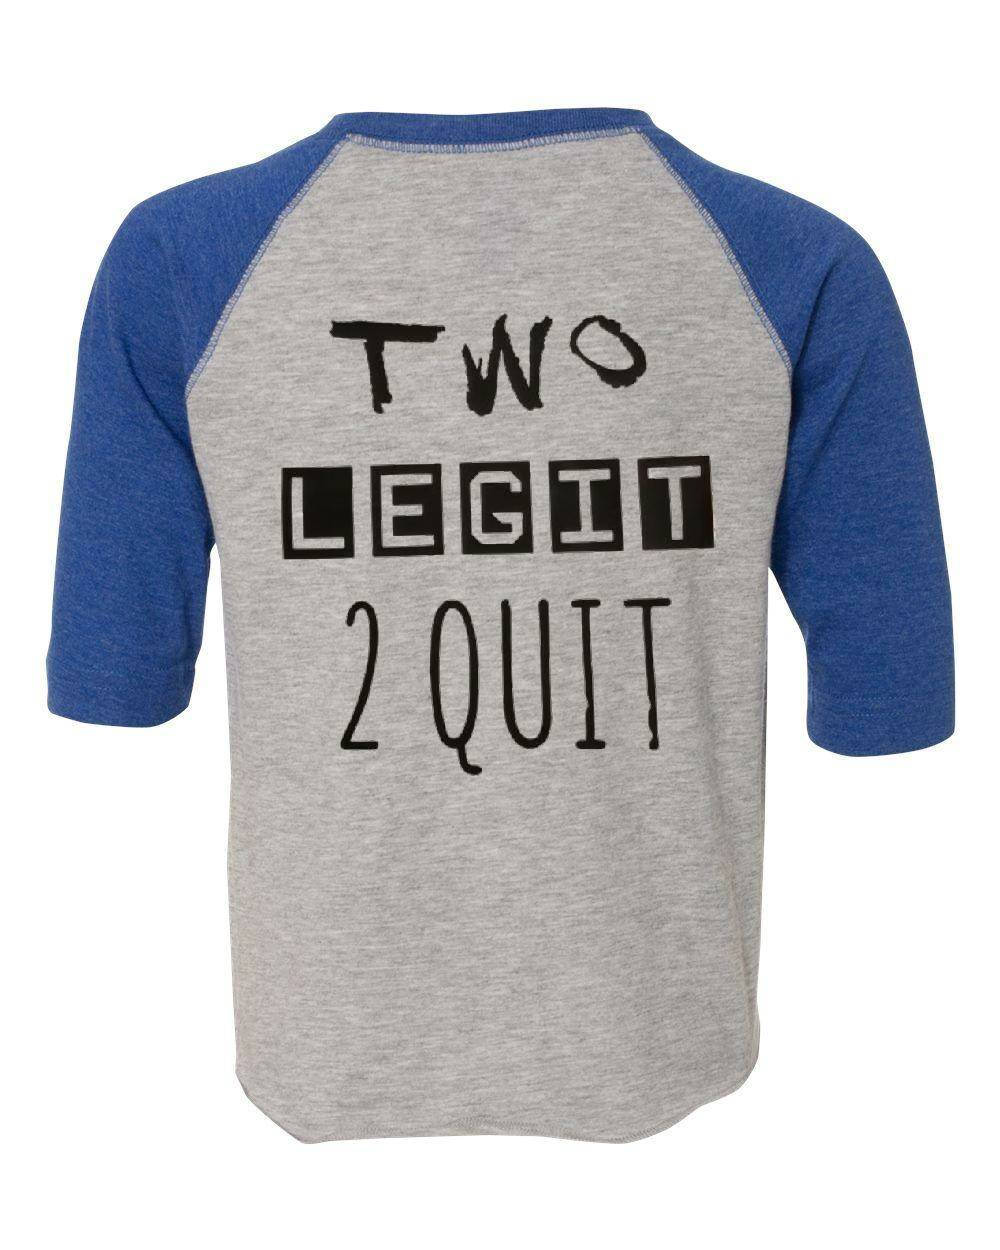 Two Year Old Birthday Boy Shirt Legit To Quit